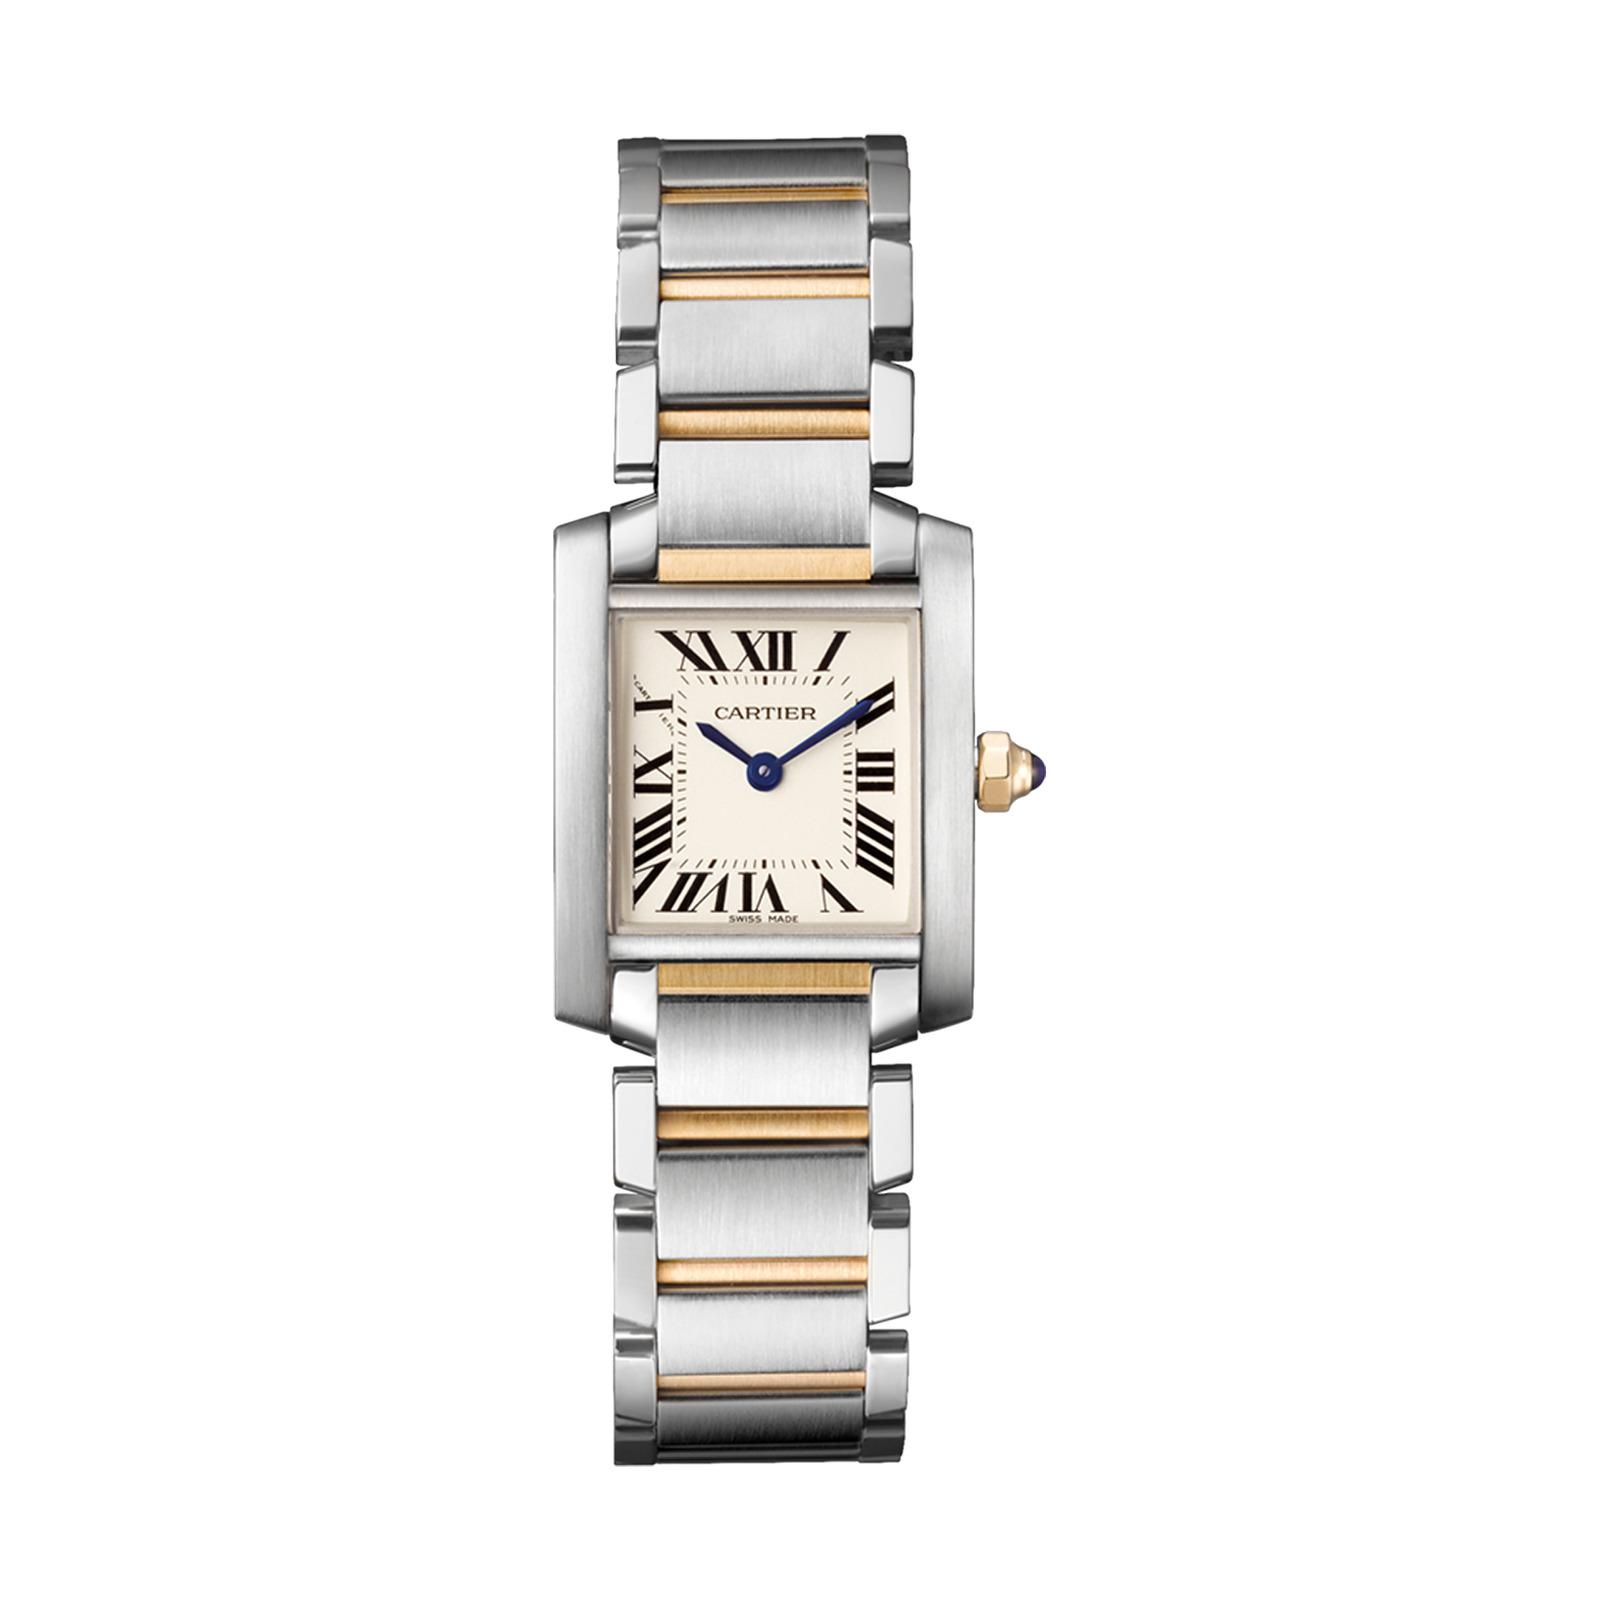 Cartier Tank Française watch, Small model, 18K yellow gold, steel